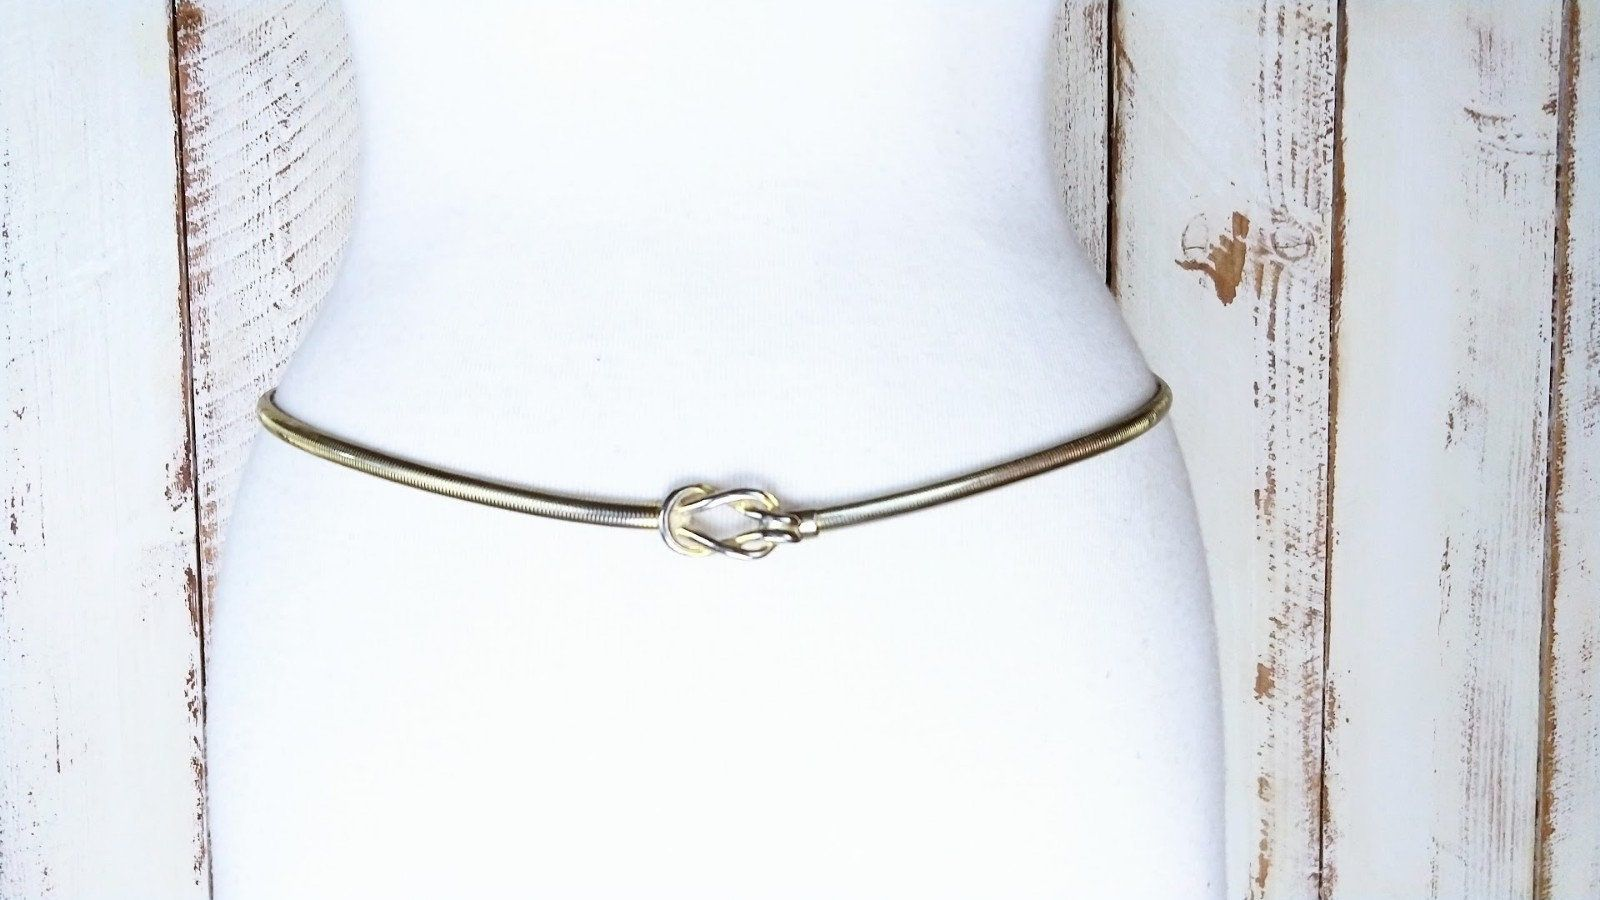 Gold /& Silver Metal Snake Chain Elastic Stretchy Waist Belt